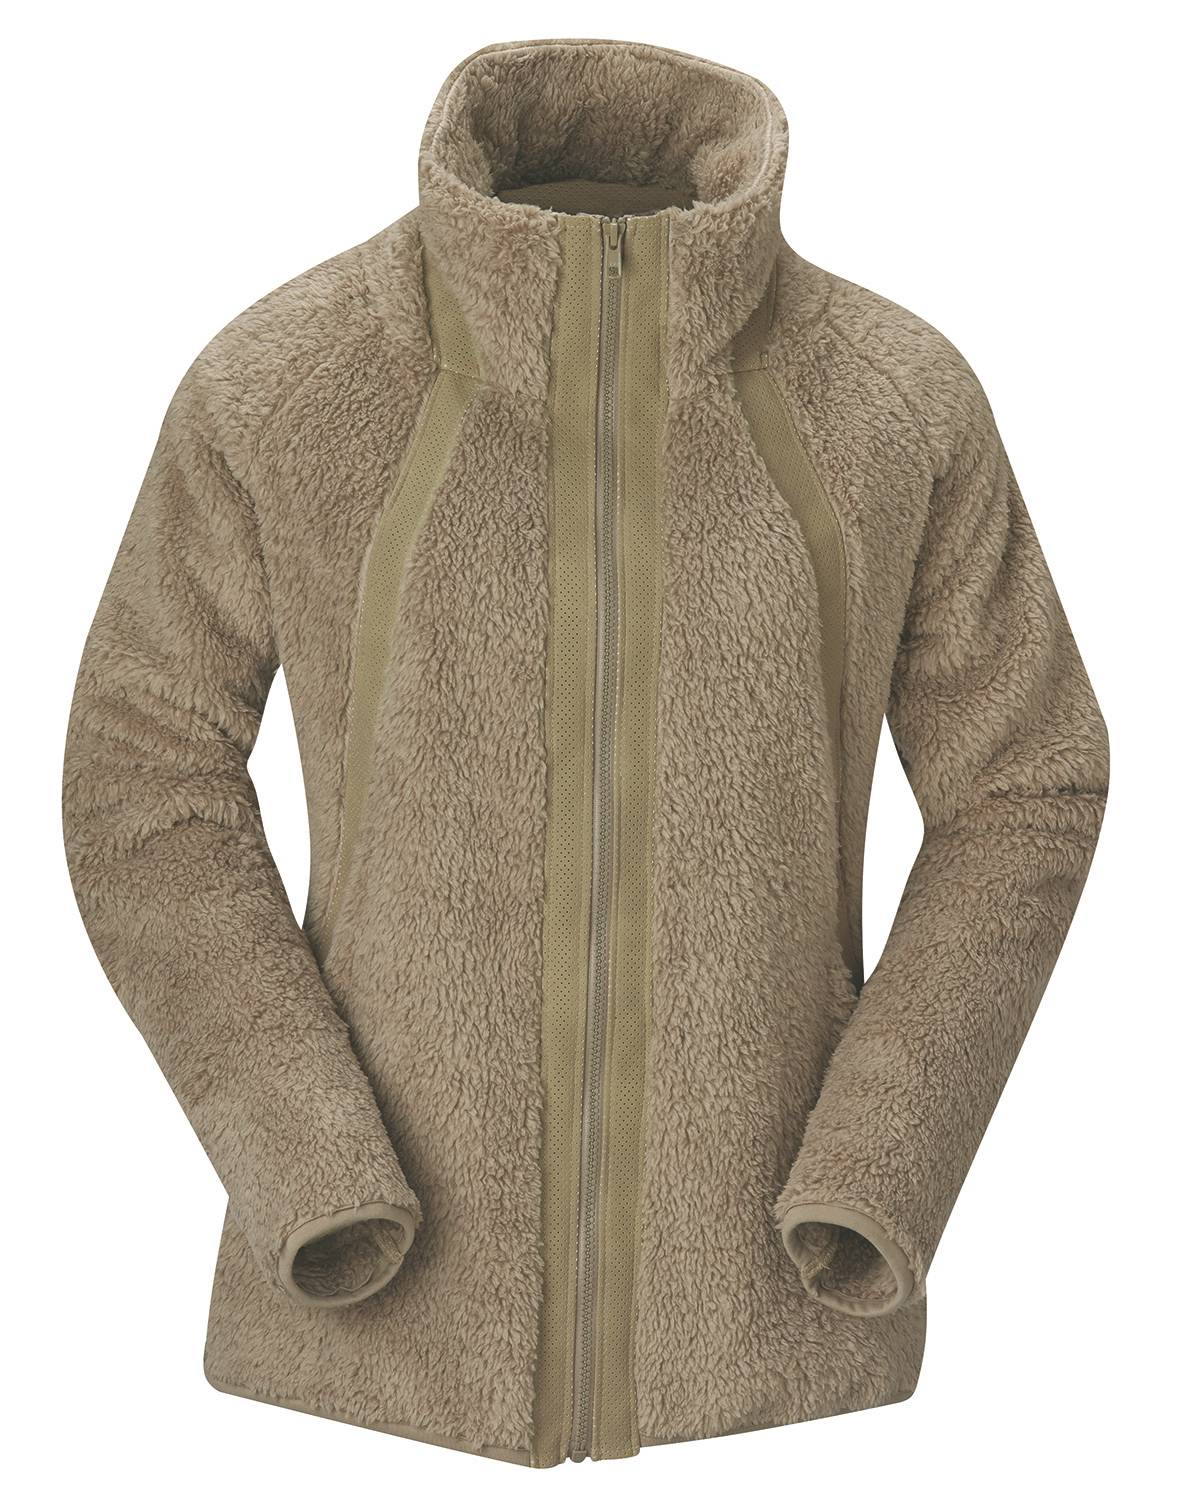 Kerrits Women's Sherpa Fleece Jacket